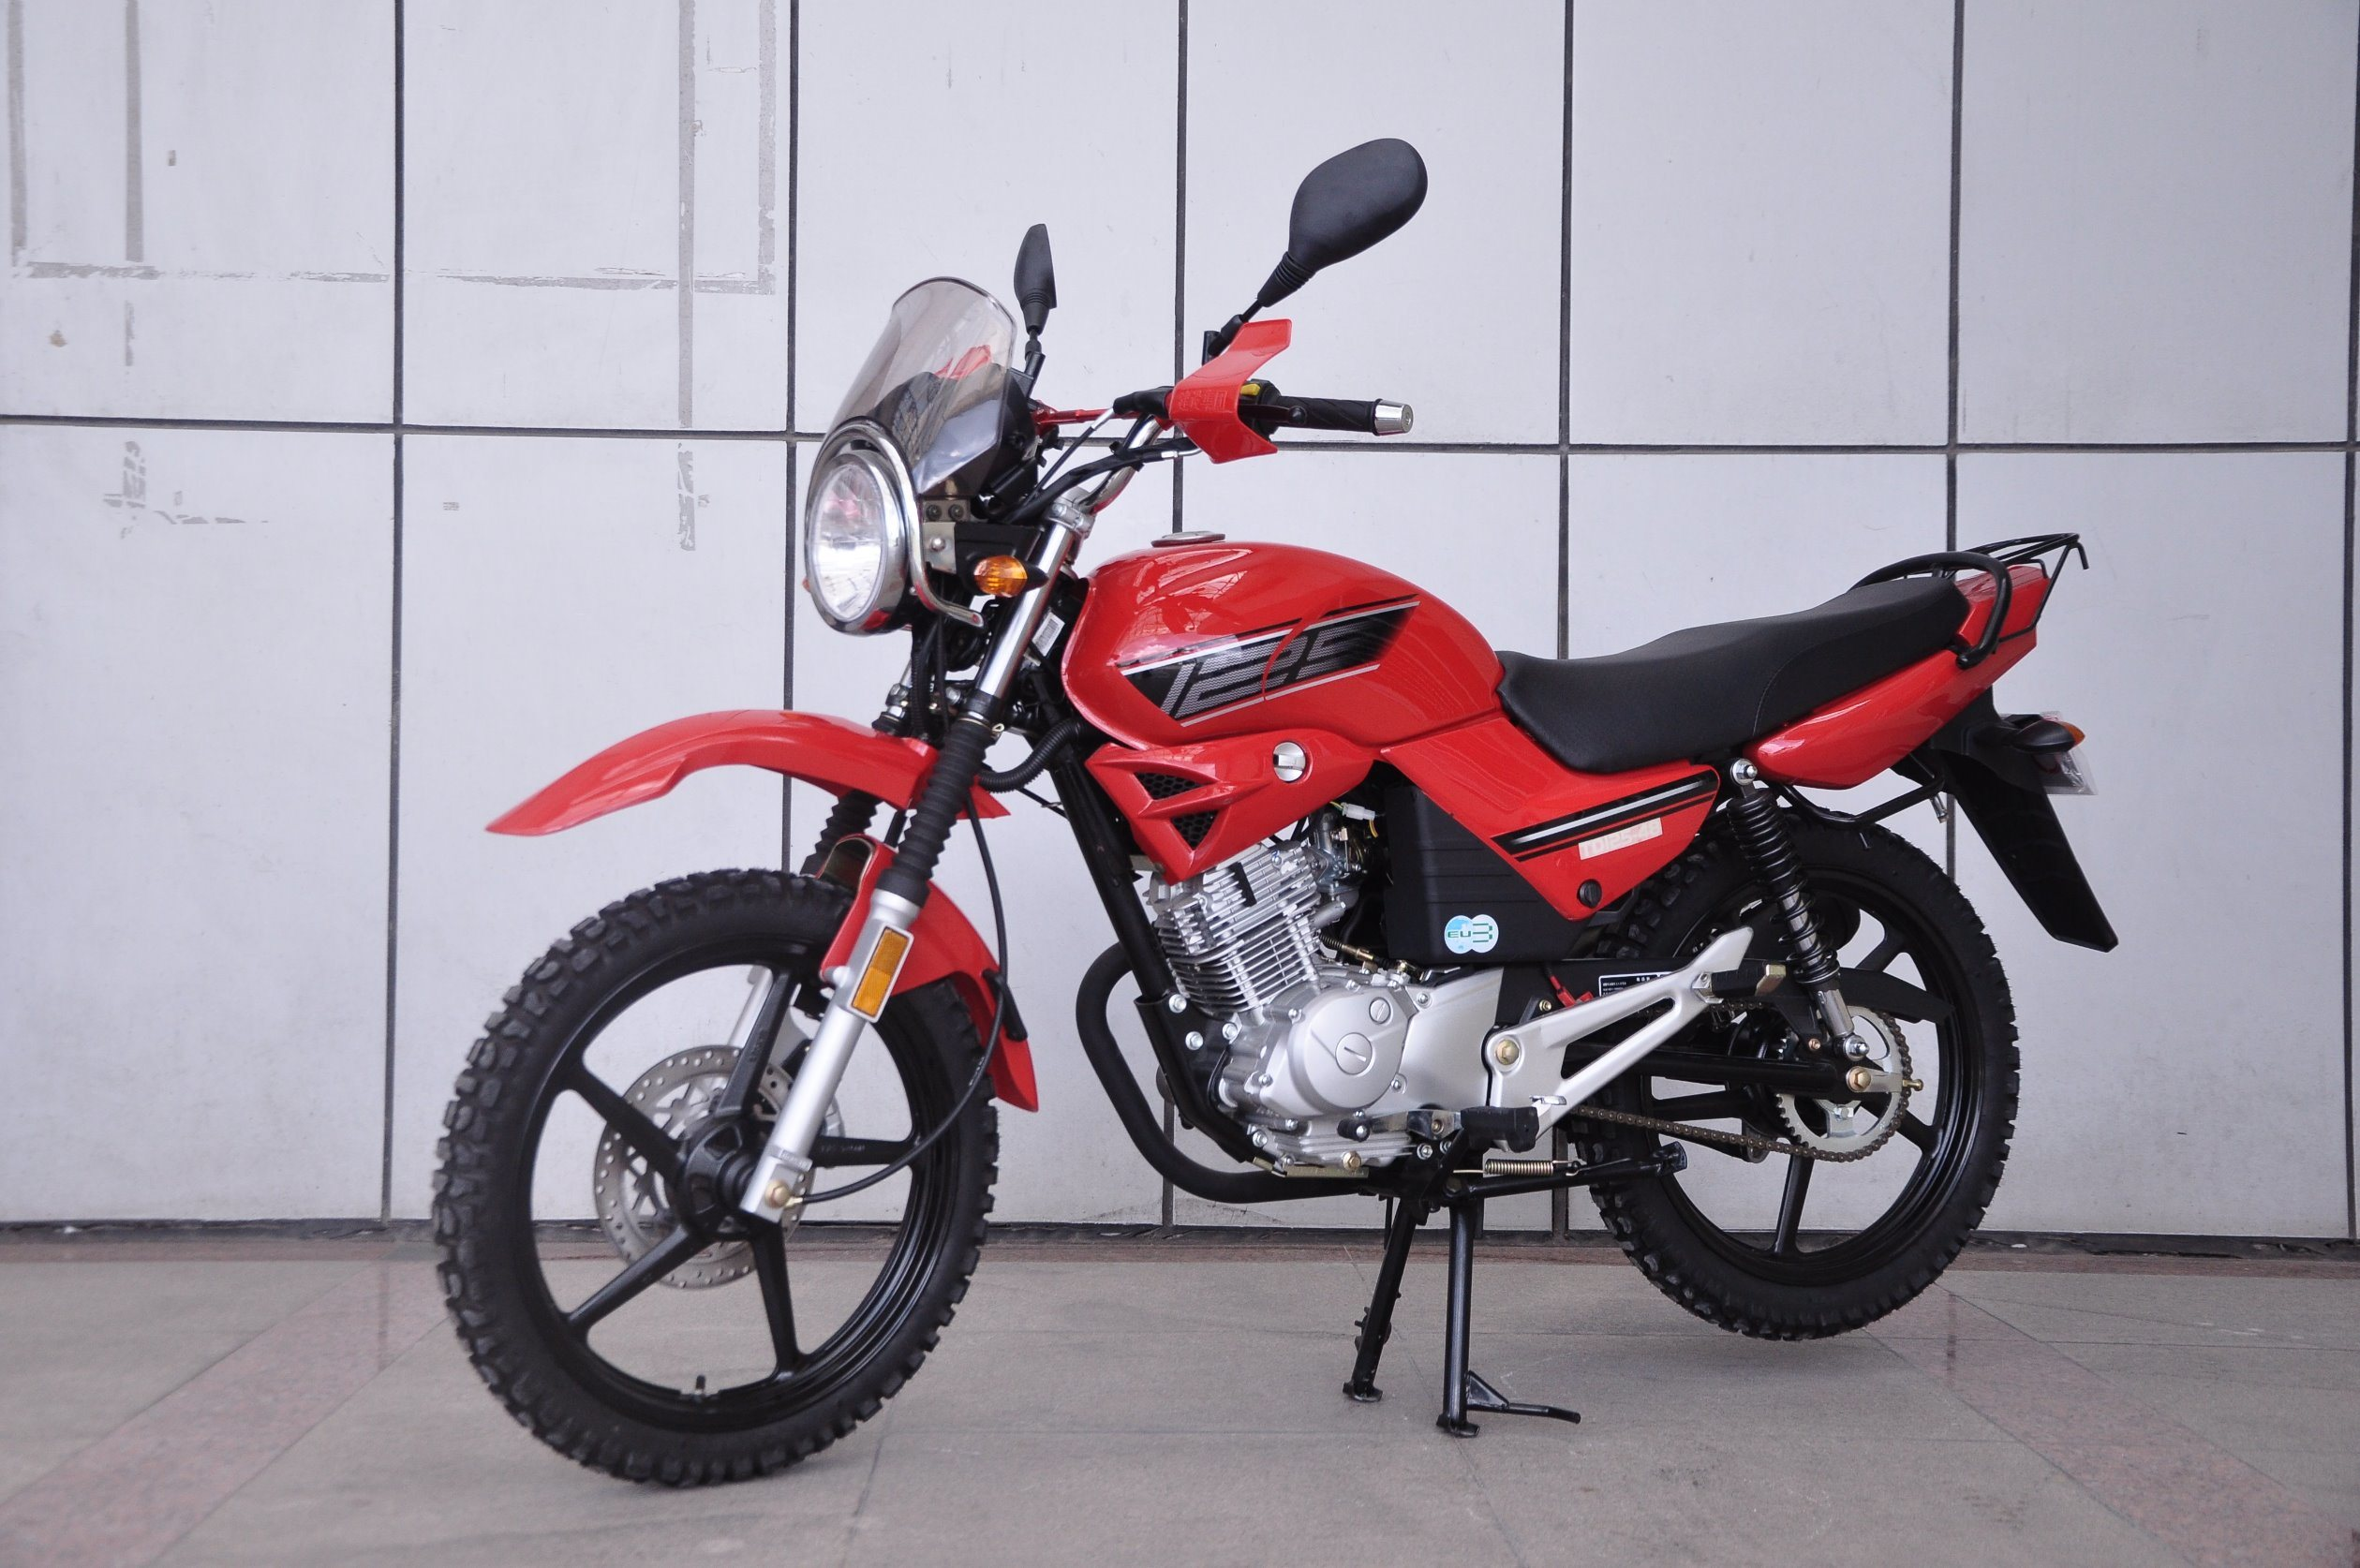 Ybr off Road Motorcycle